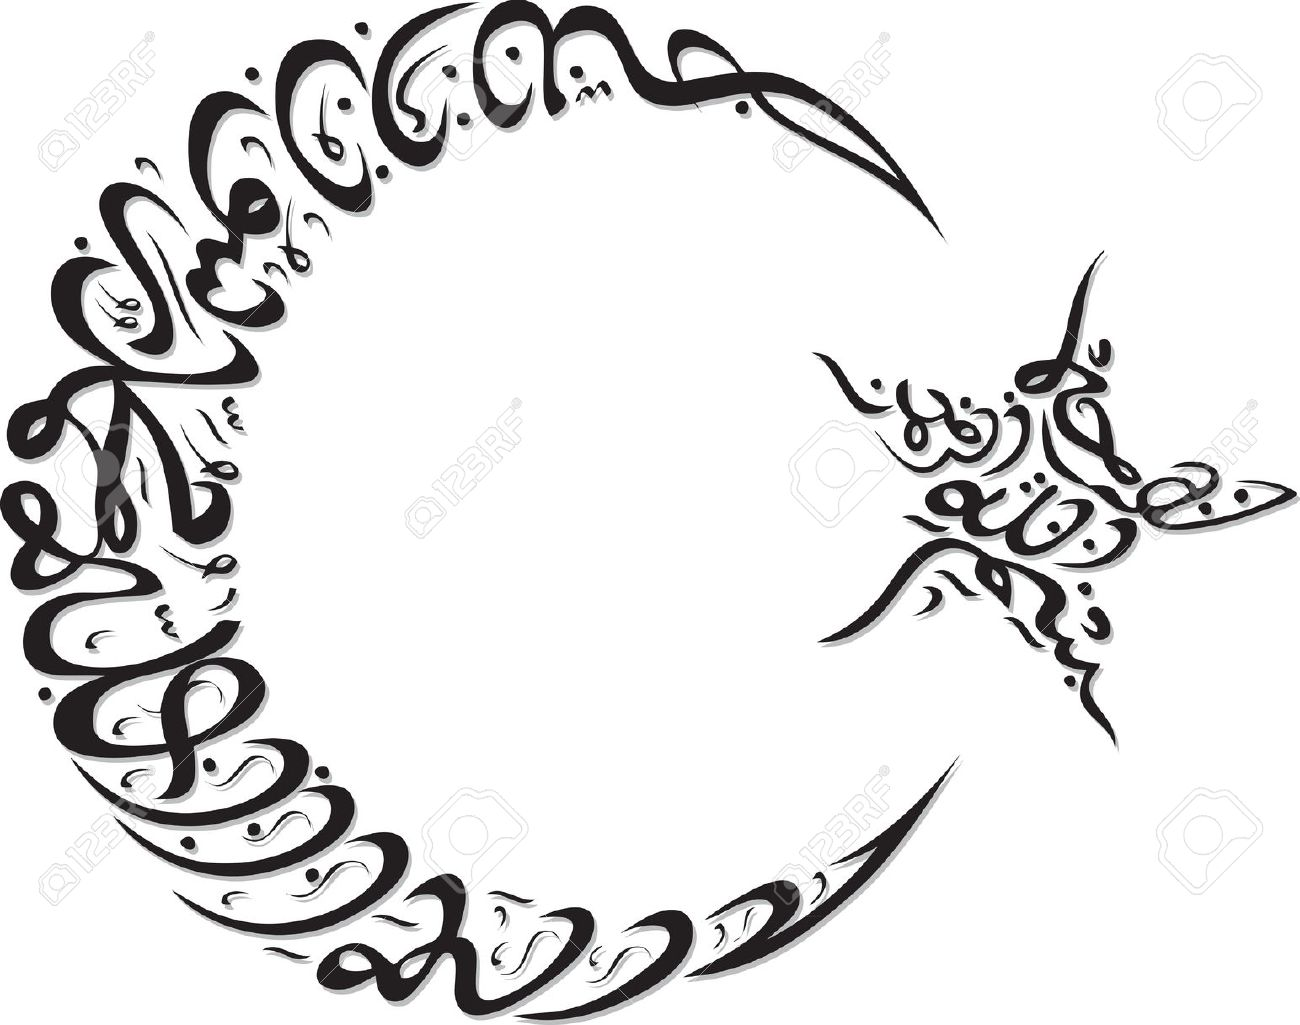 1300x1025 Islamic Calligraphy Stock Photos Images, Royalty Free Islamic